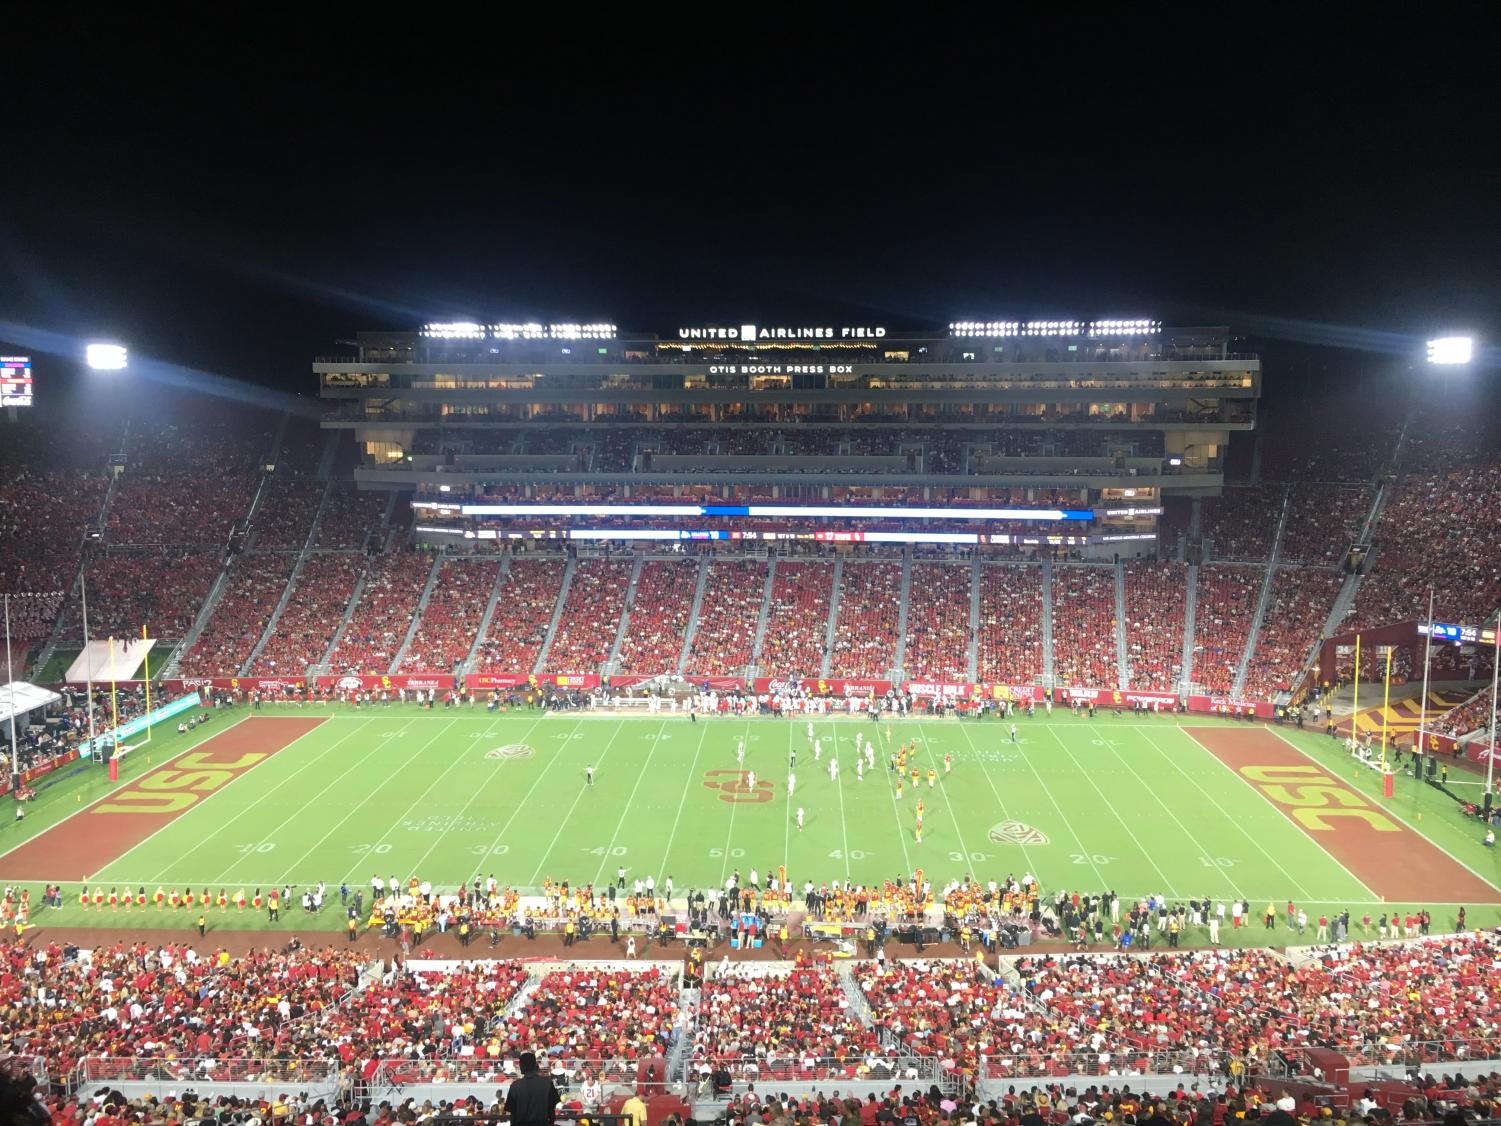 The LA Coliseum will host the battle for LA between USC and UCLA